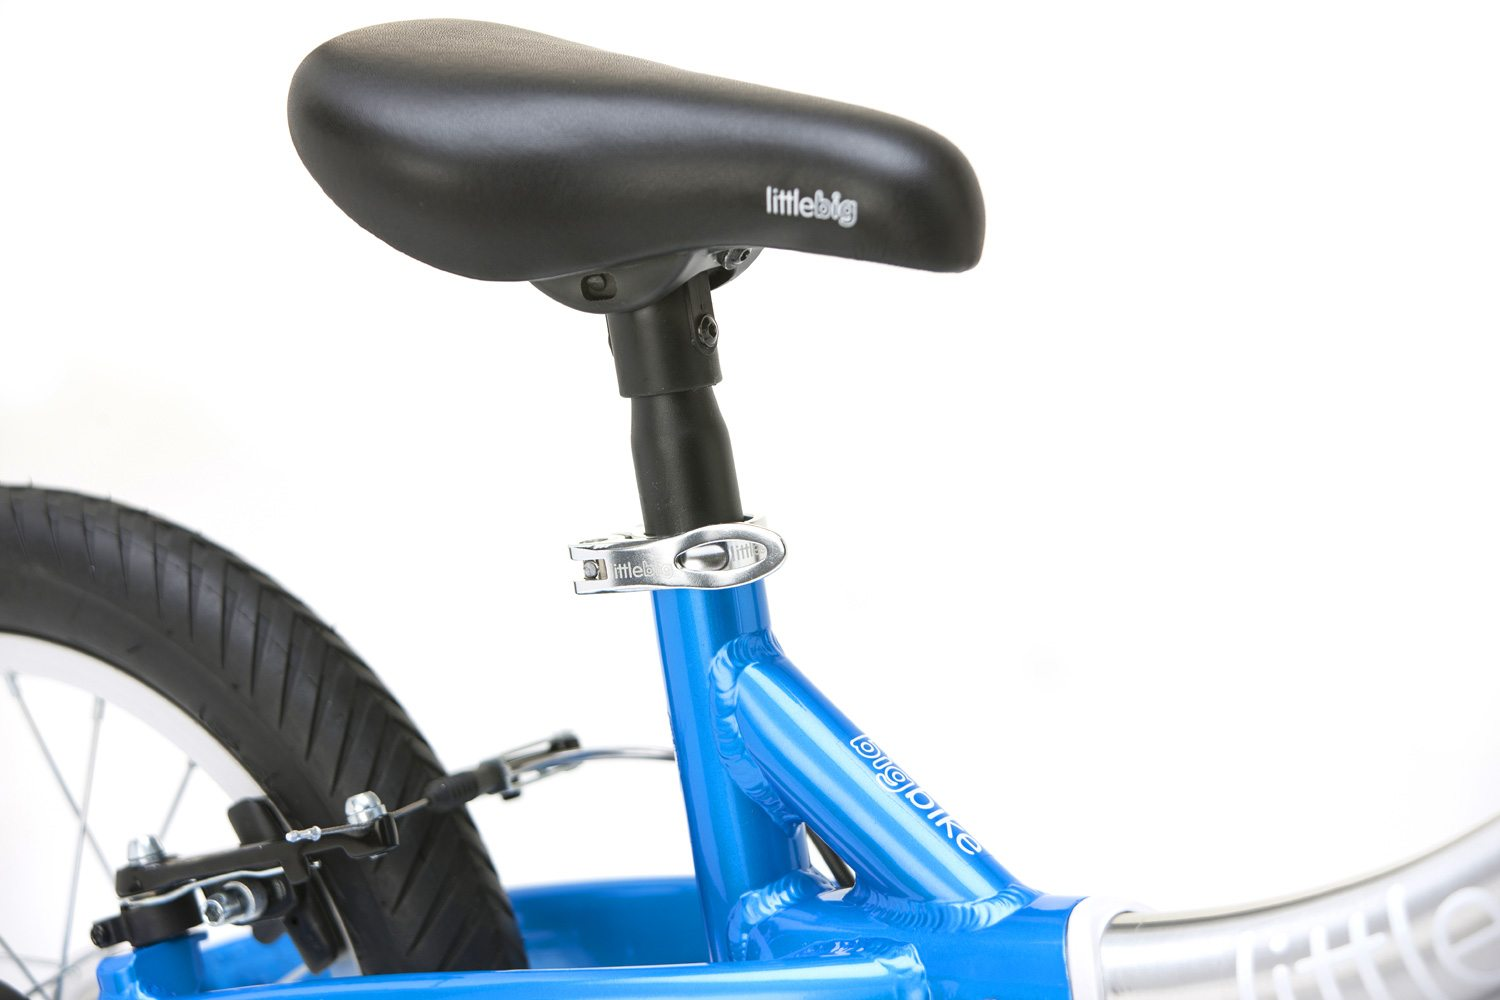 Lightweight pivotal saddle, alloy seatpost and quick release seat-clamp